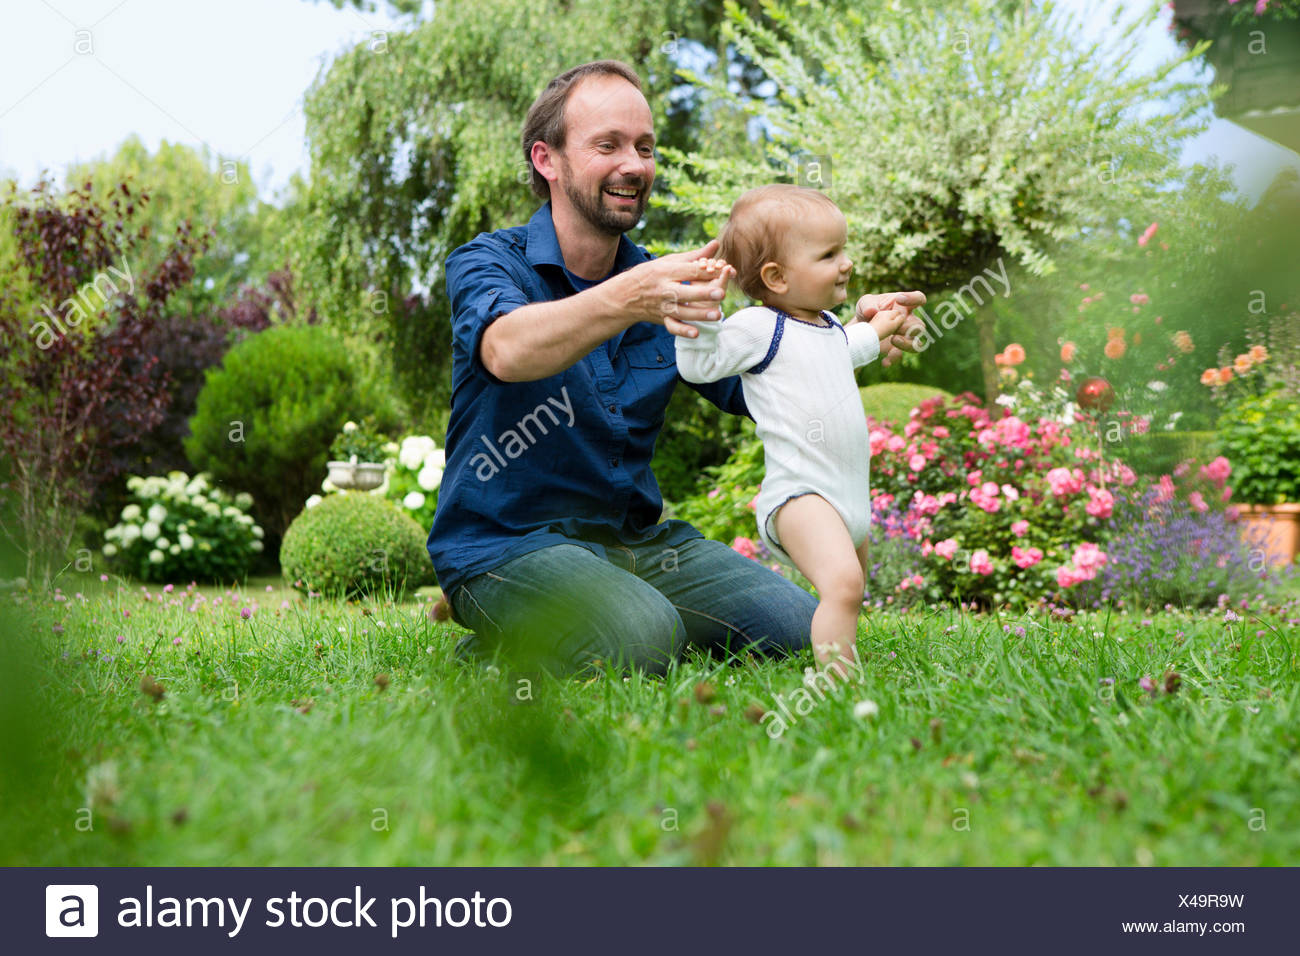 Father holding baby daughters hands whilst toddling in garden - Stock Image